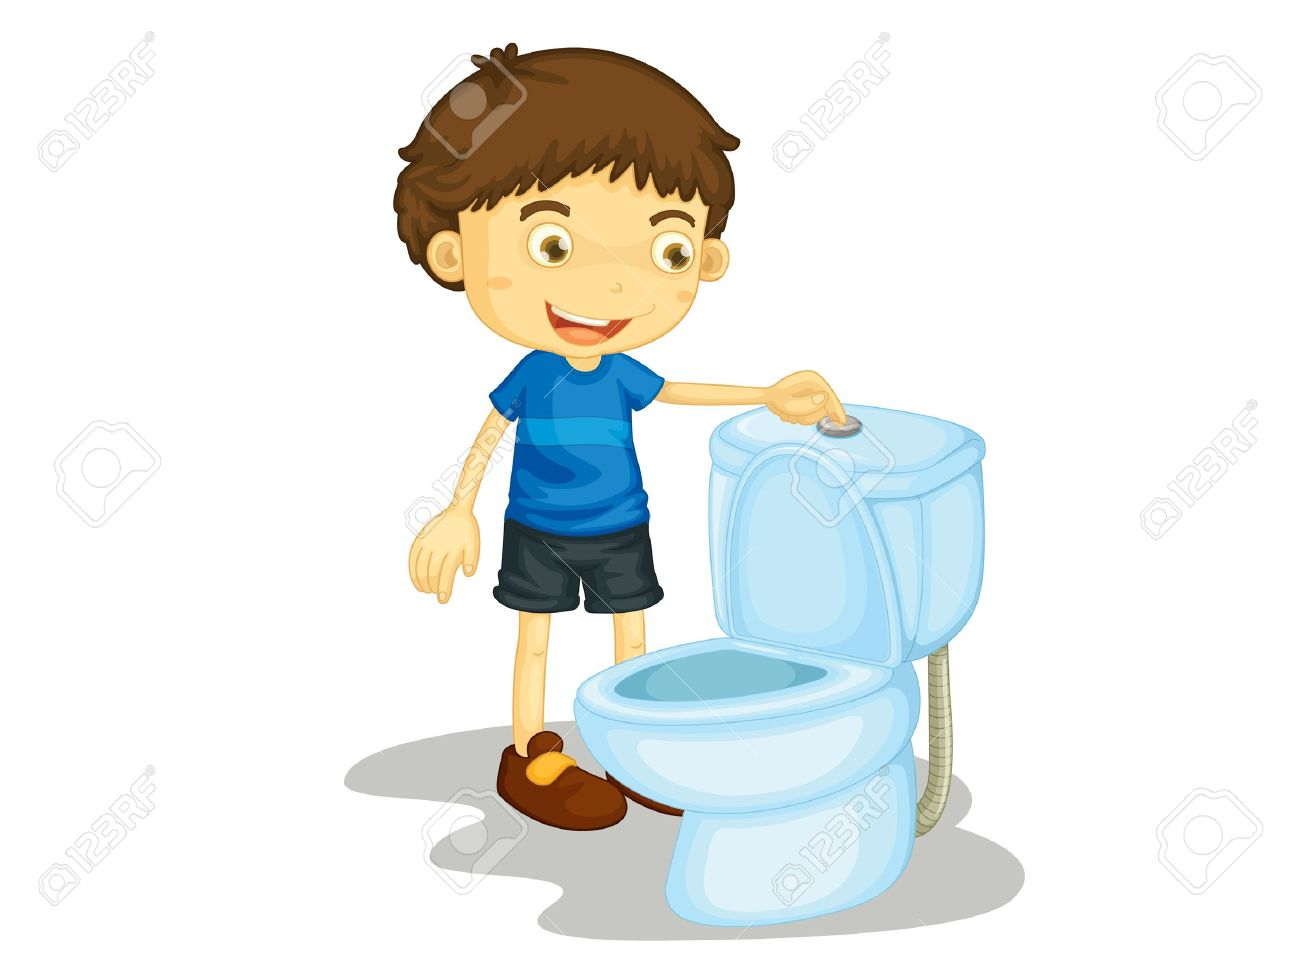 Cleaning bathroom clipart